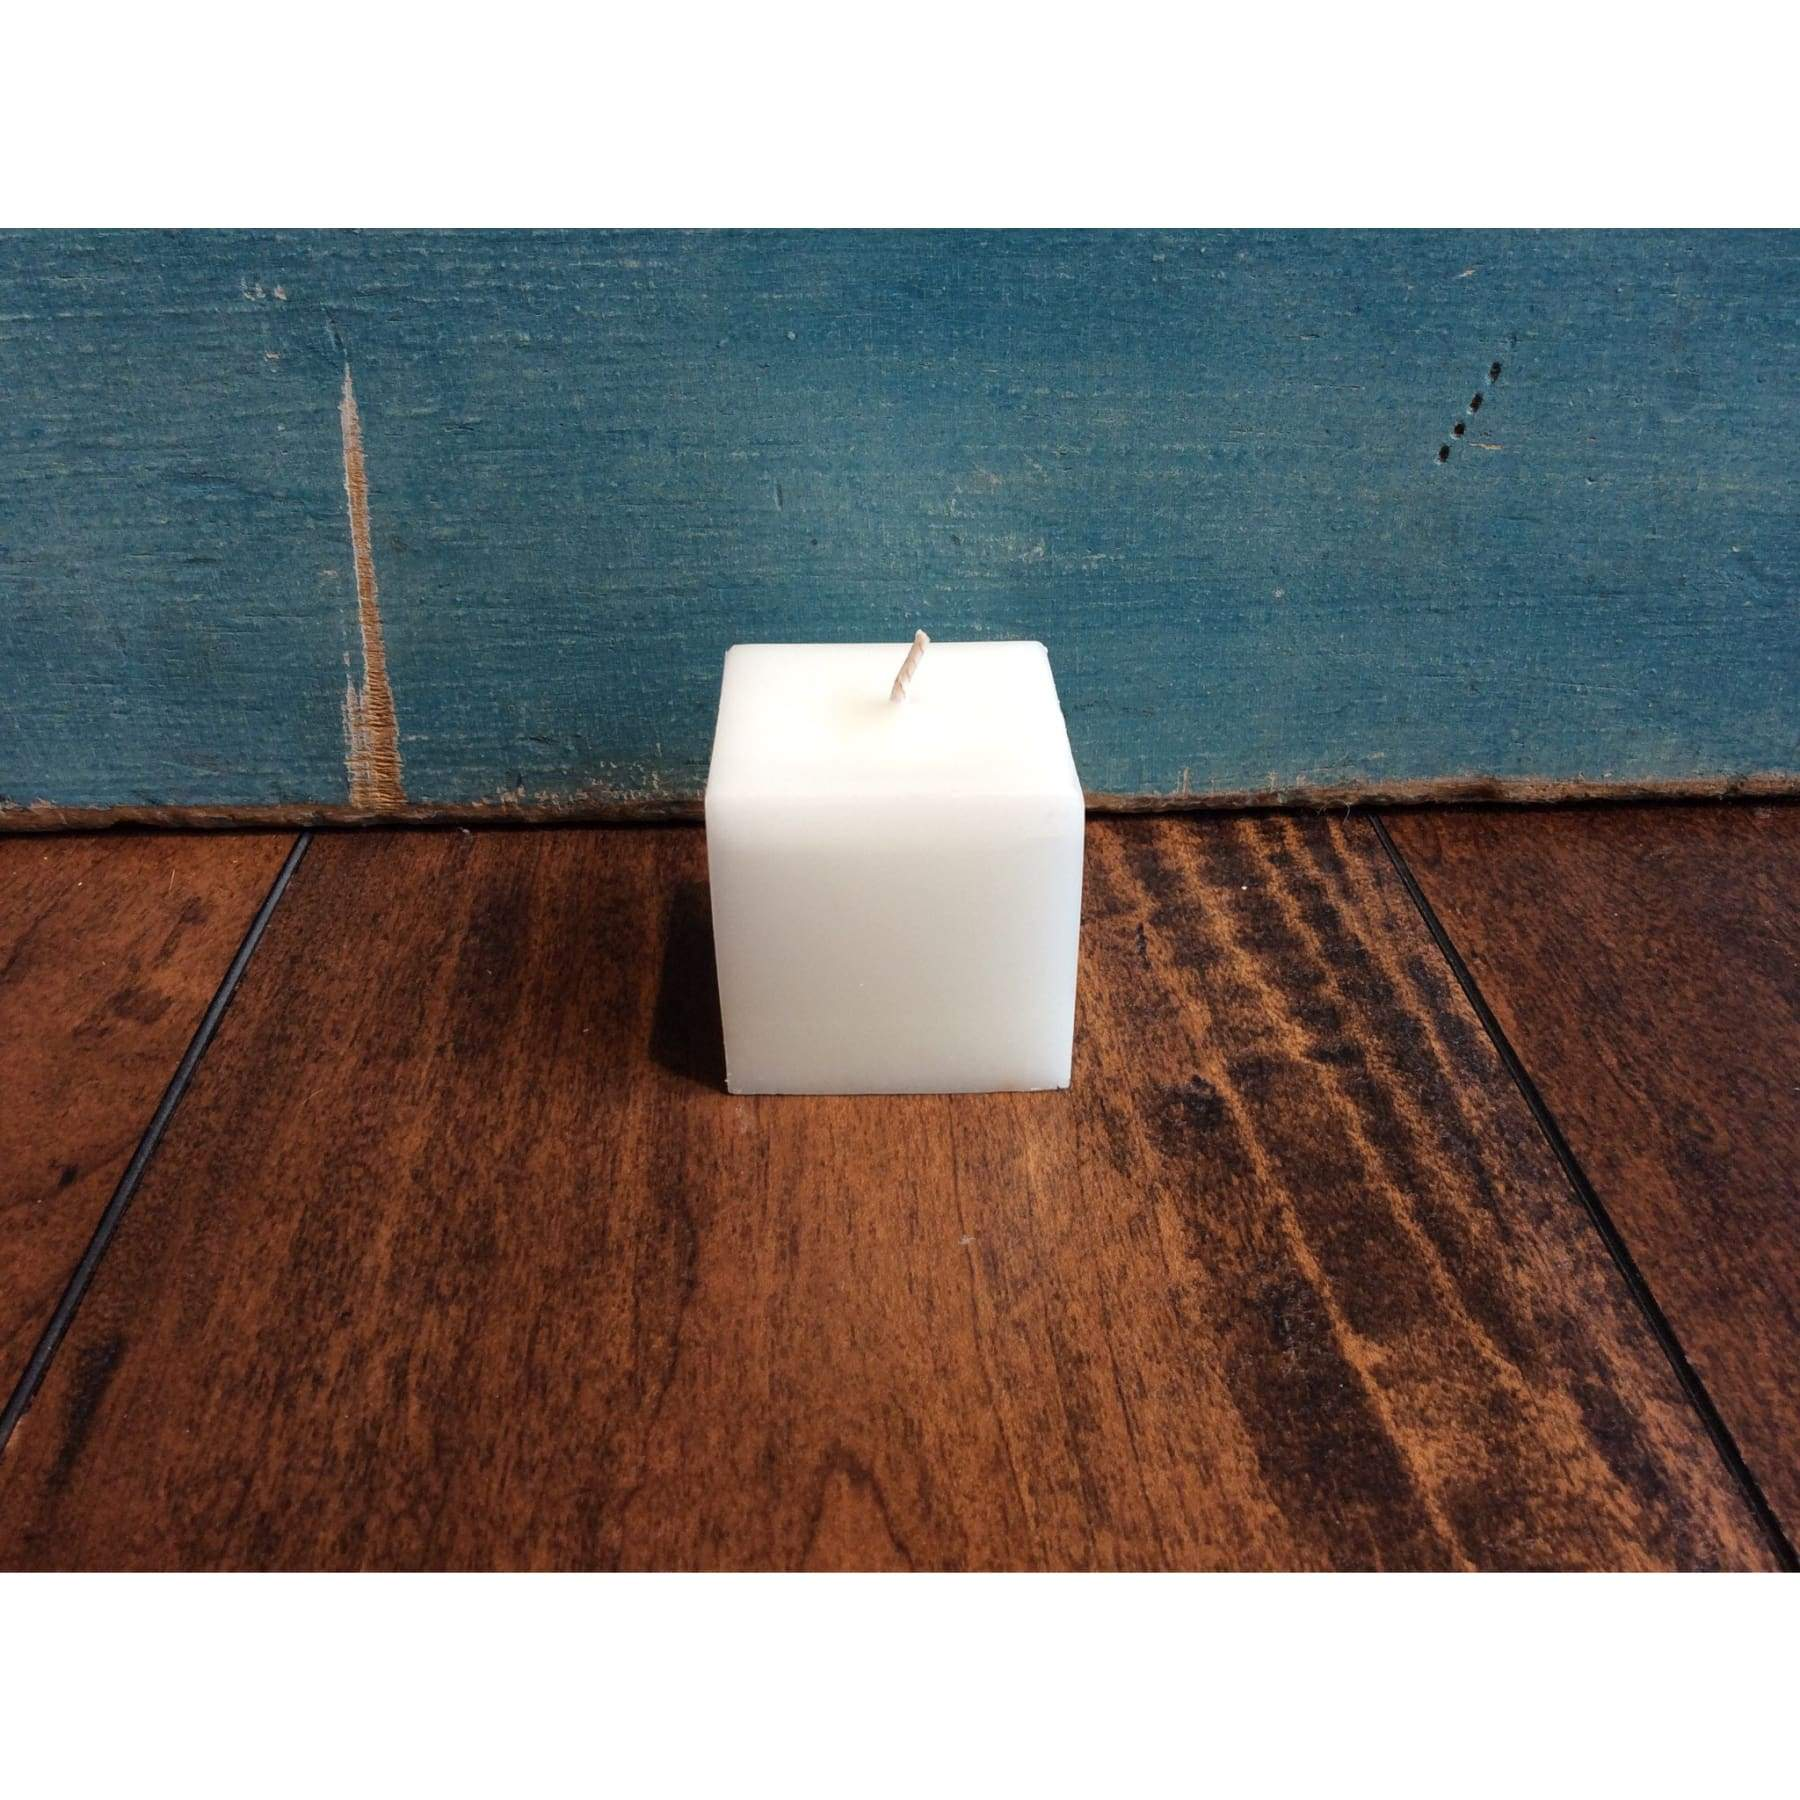 Texas General Square Candles - Sleeping on Snow